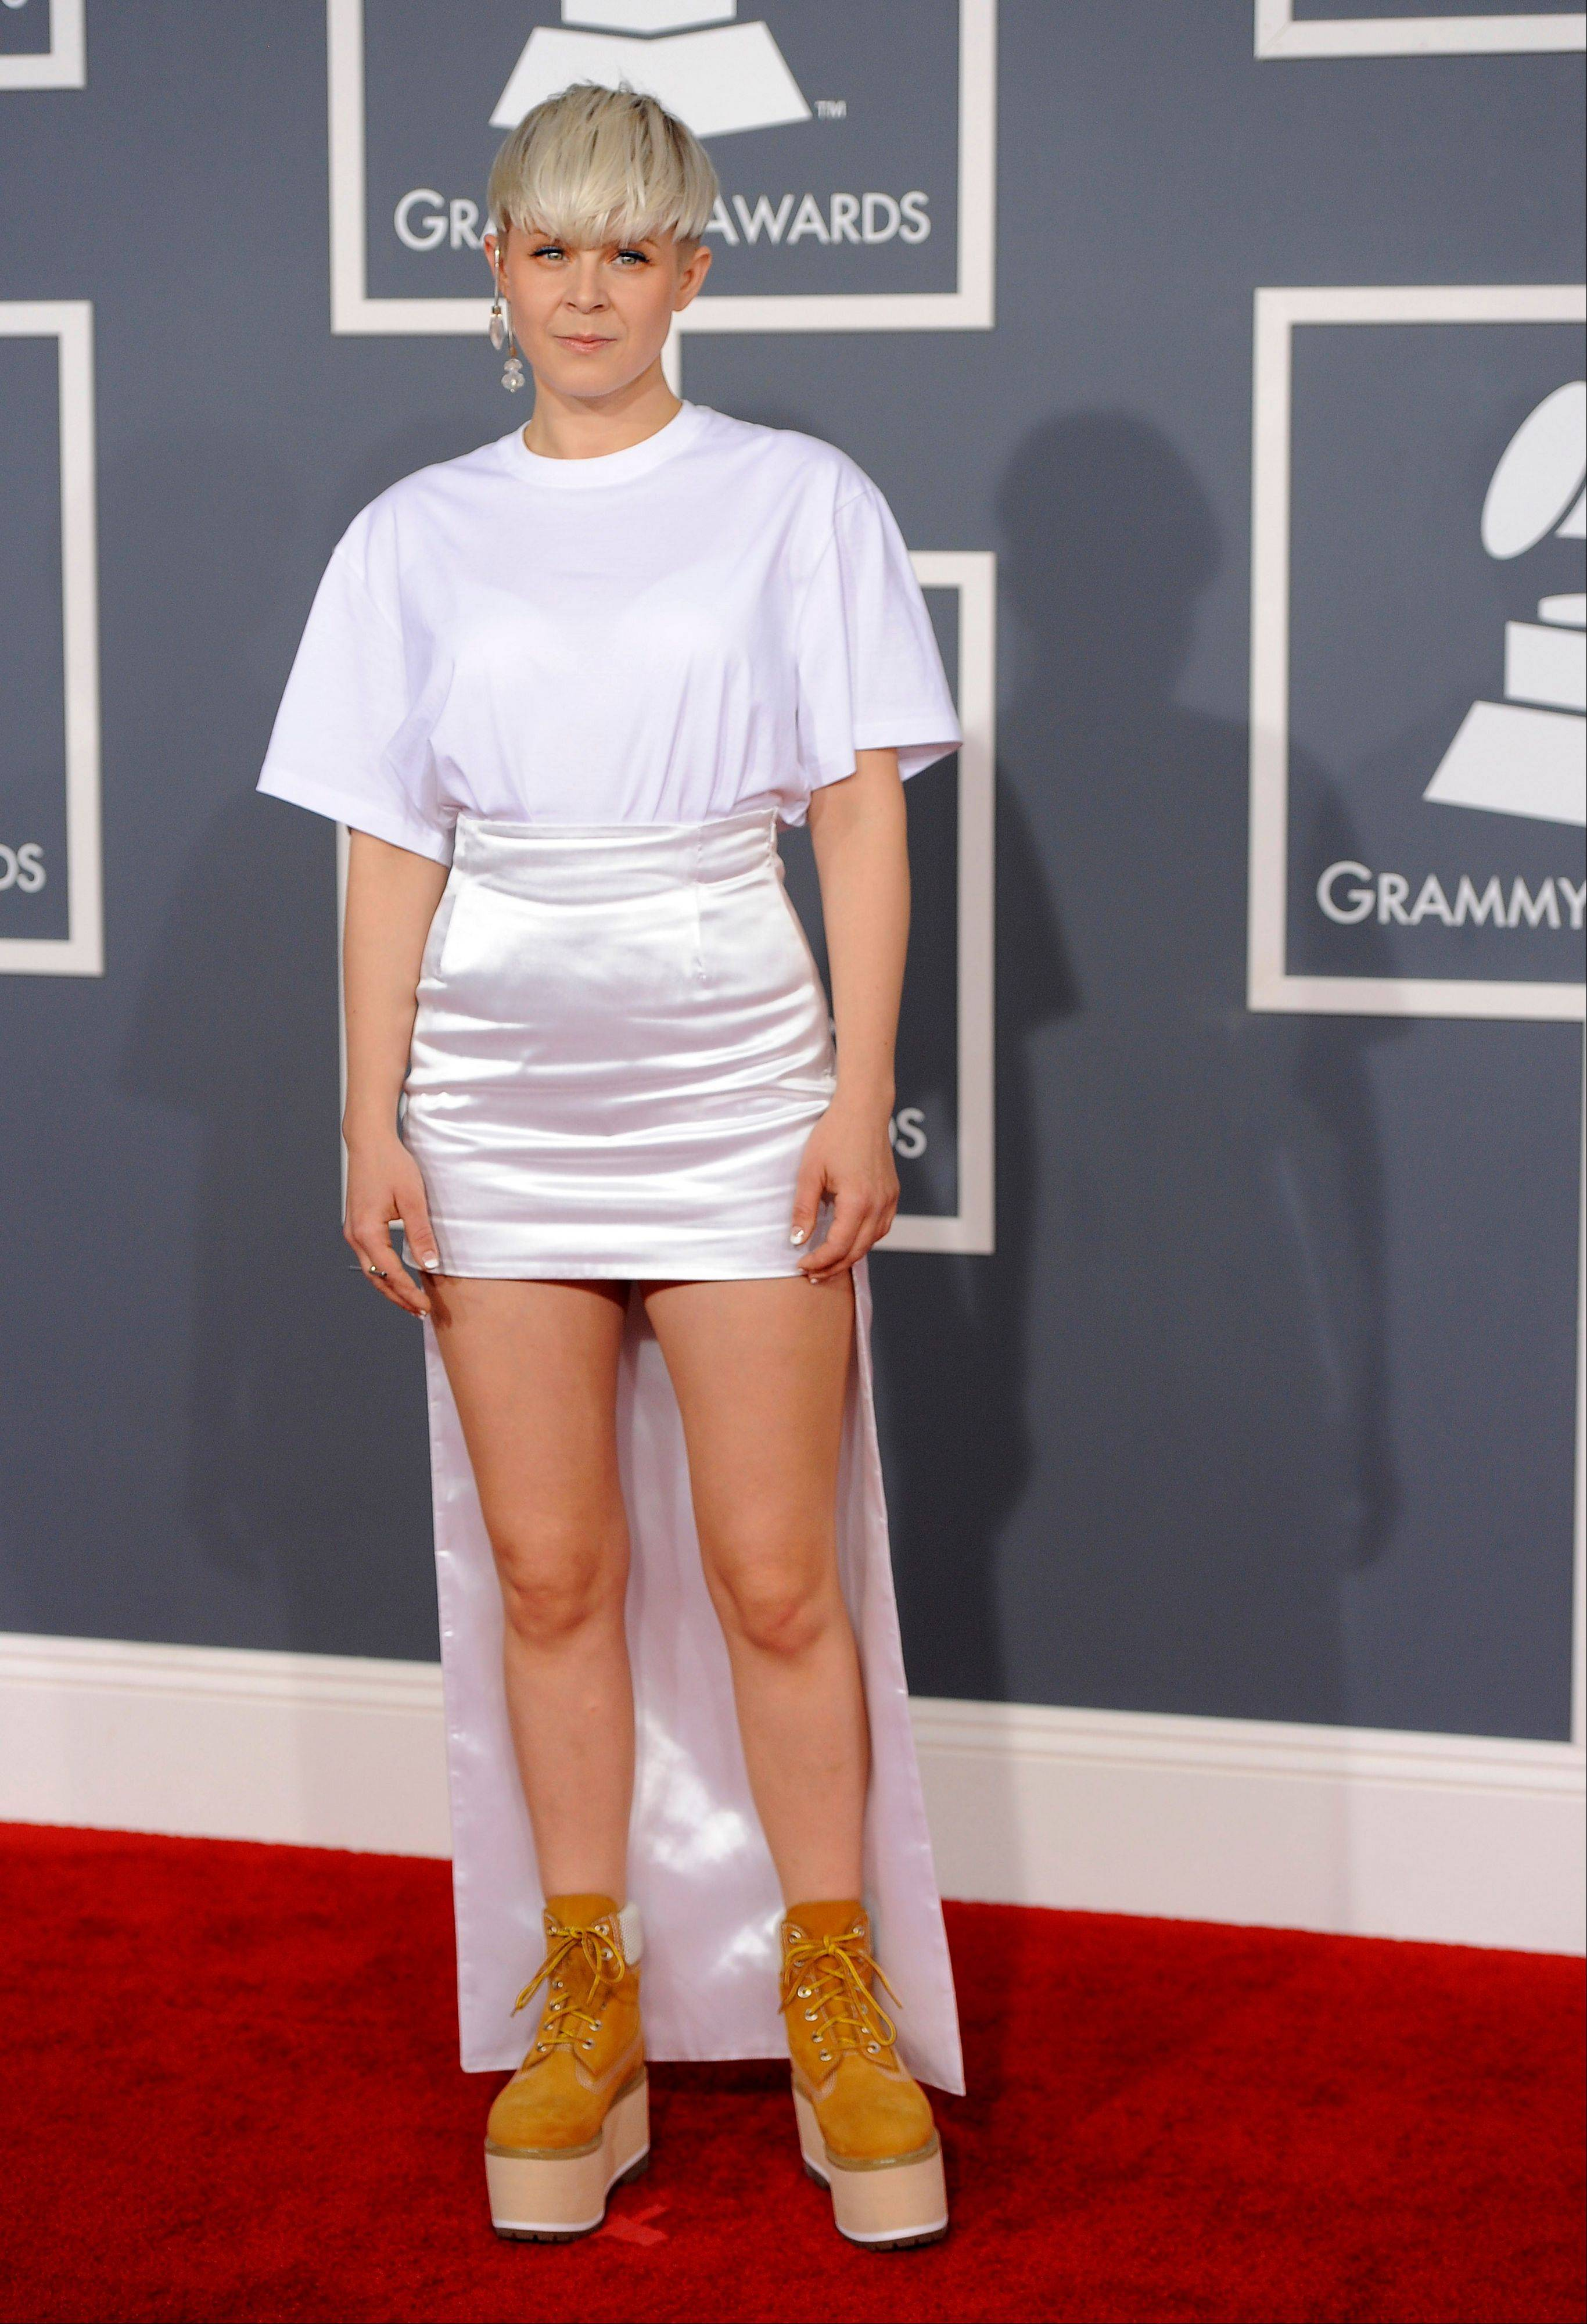 Robyn arrives Sunday at the 54th annual Grammy Awards in Los Angeles.